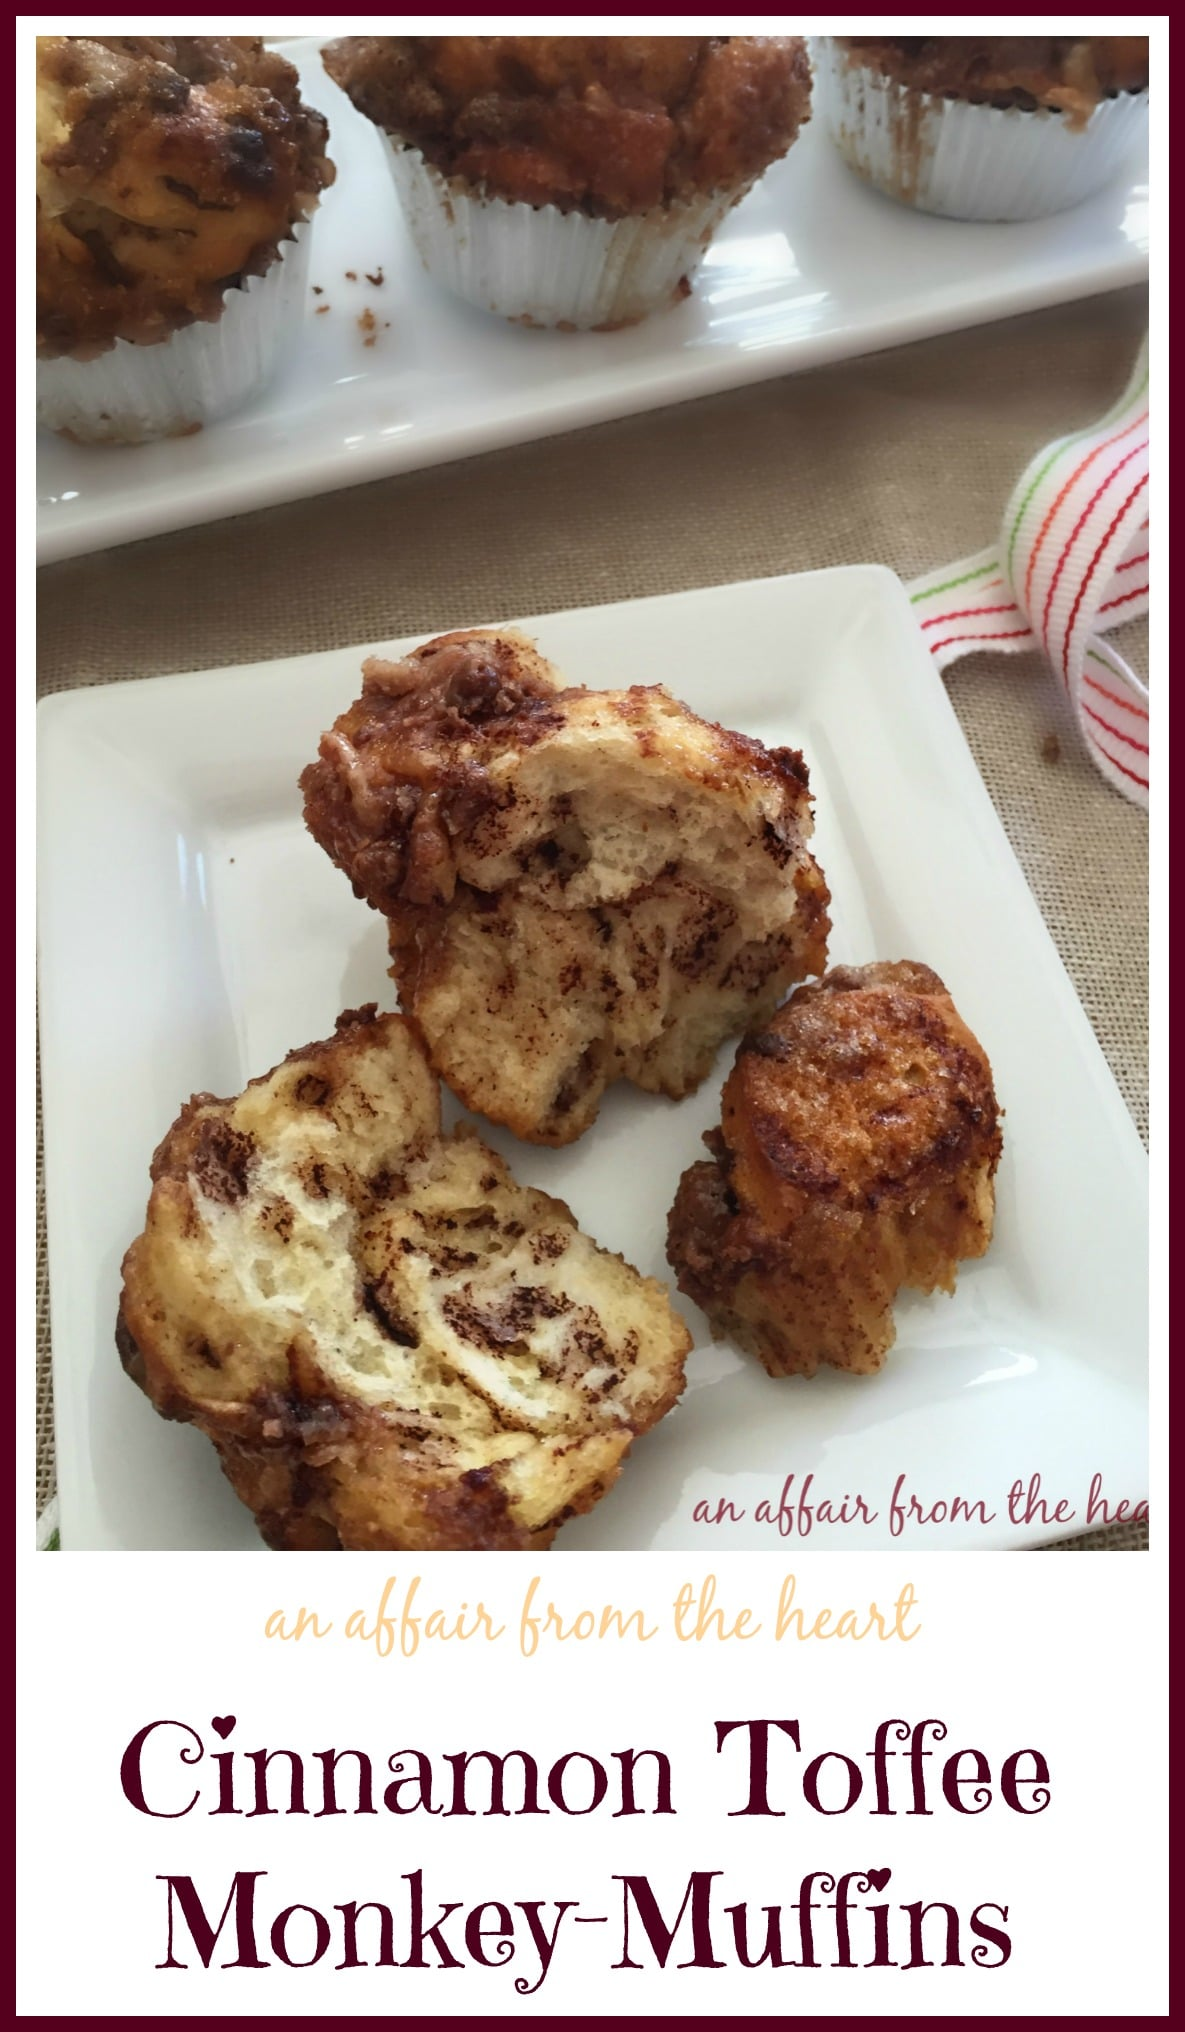 Cinnamon Toffee Monkey-Muffins | An Affair from the Heart